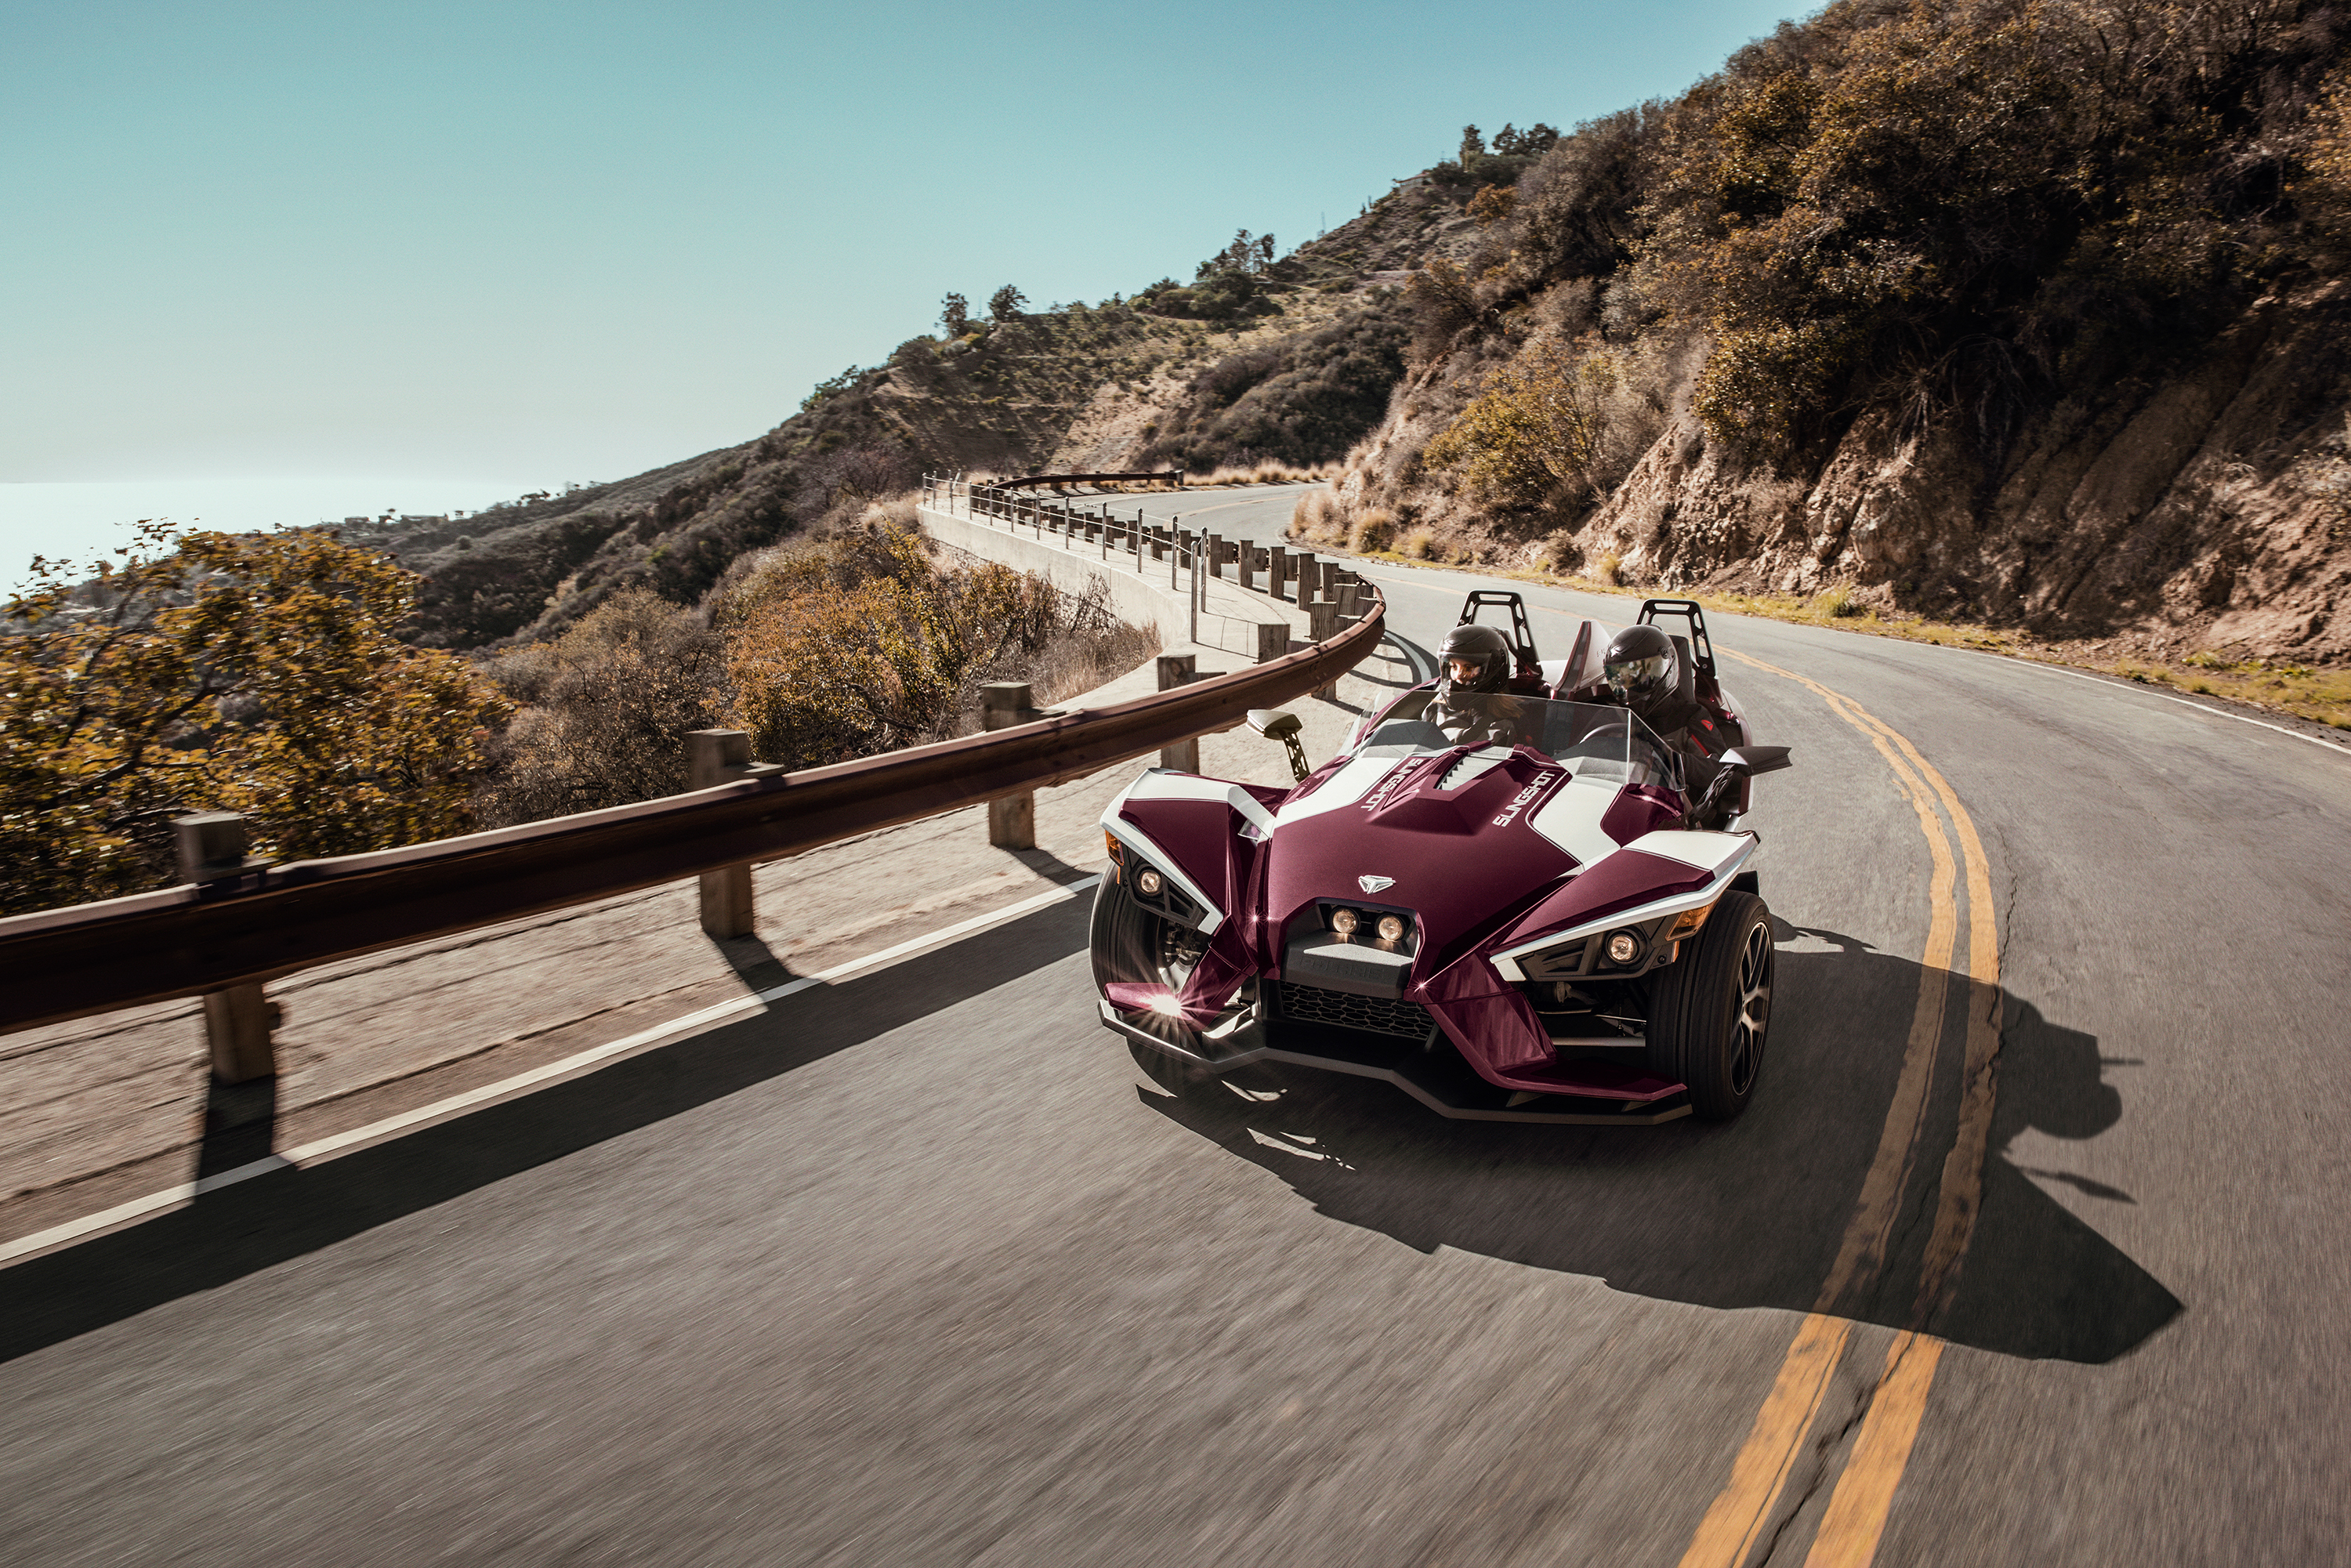 Audi Sports Car Wallpaper Download Polaris Slingshot Sl Limited Edition Midnight Cherry